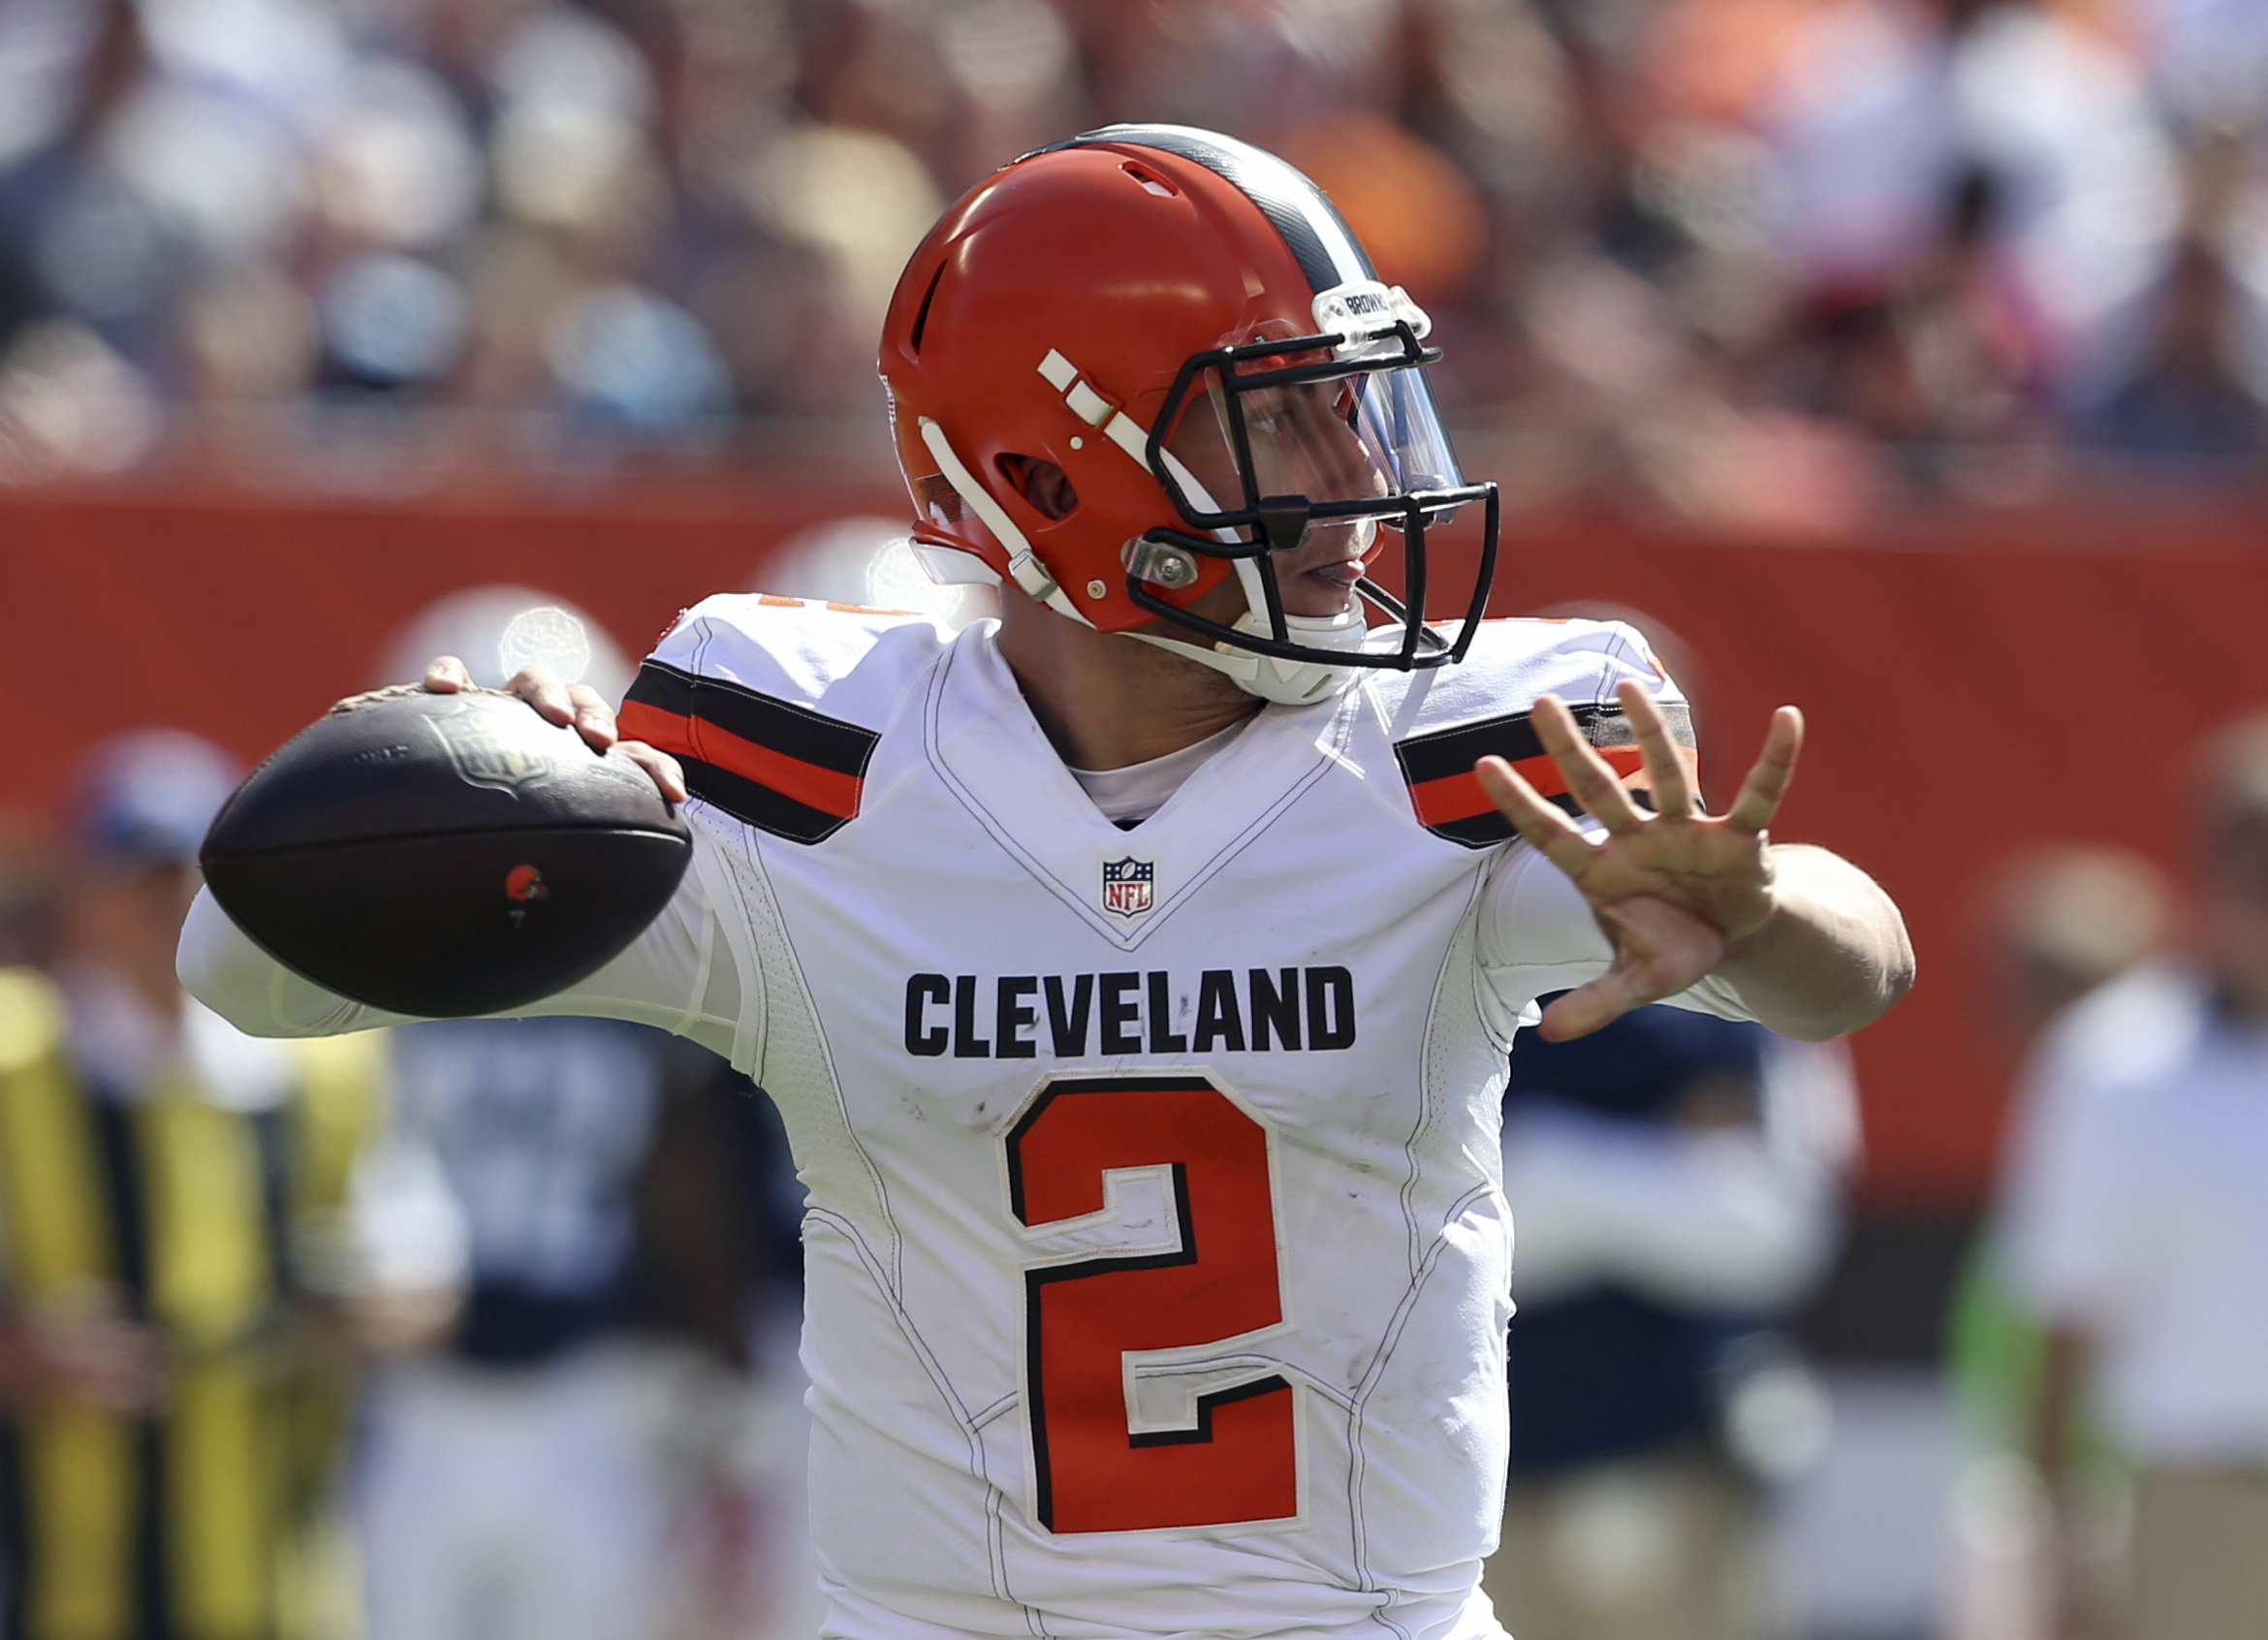 FILE - In this Sunday, Sept. 20, 2015 file photo, Cleveland Browns quarterback Johnny Manziel (2) looks to pass during the first half of an NFL football game against the Tennessee Titans in Cleveland. Manziel threw a 60-yard touchdown pass to Travis Benja